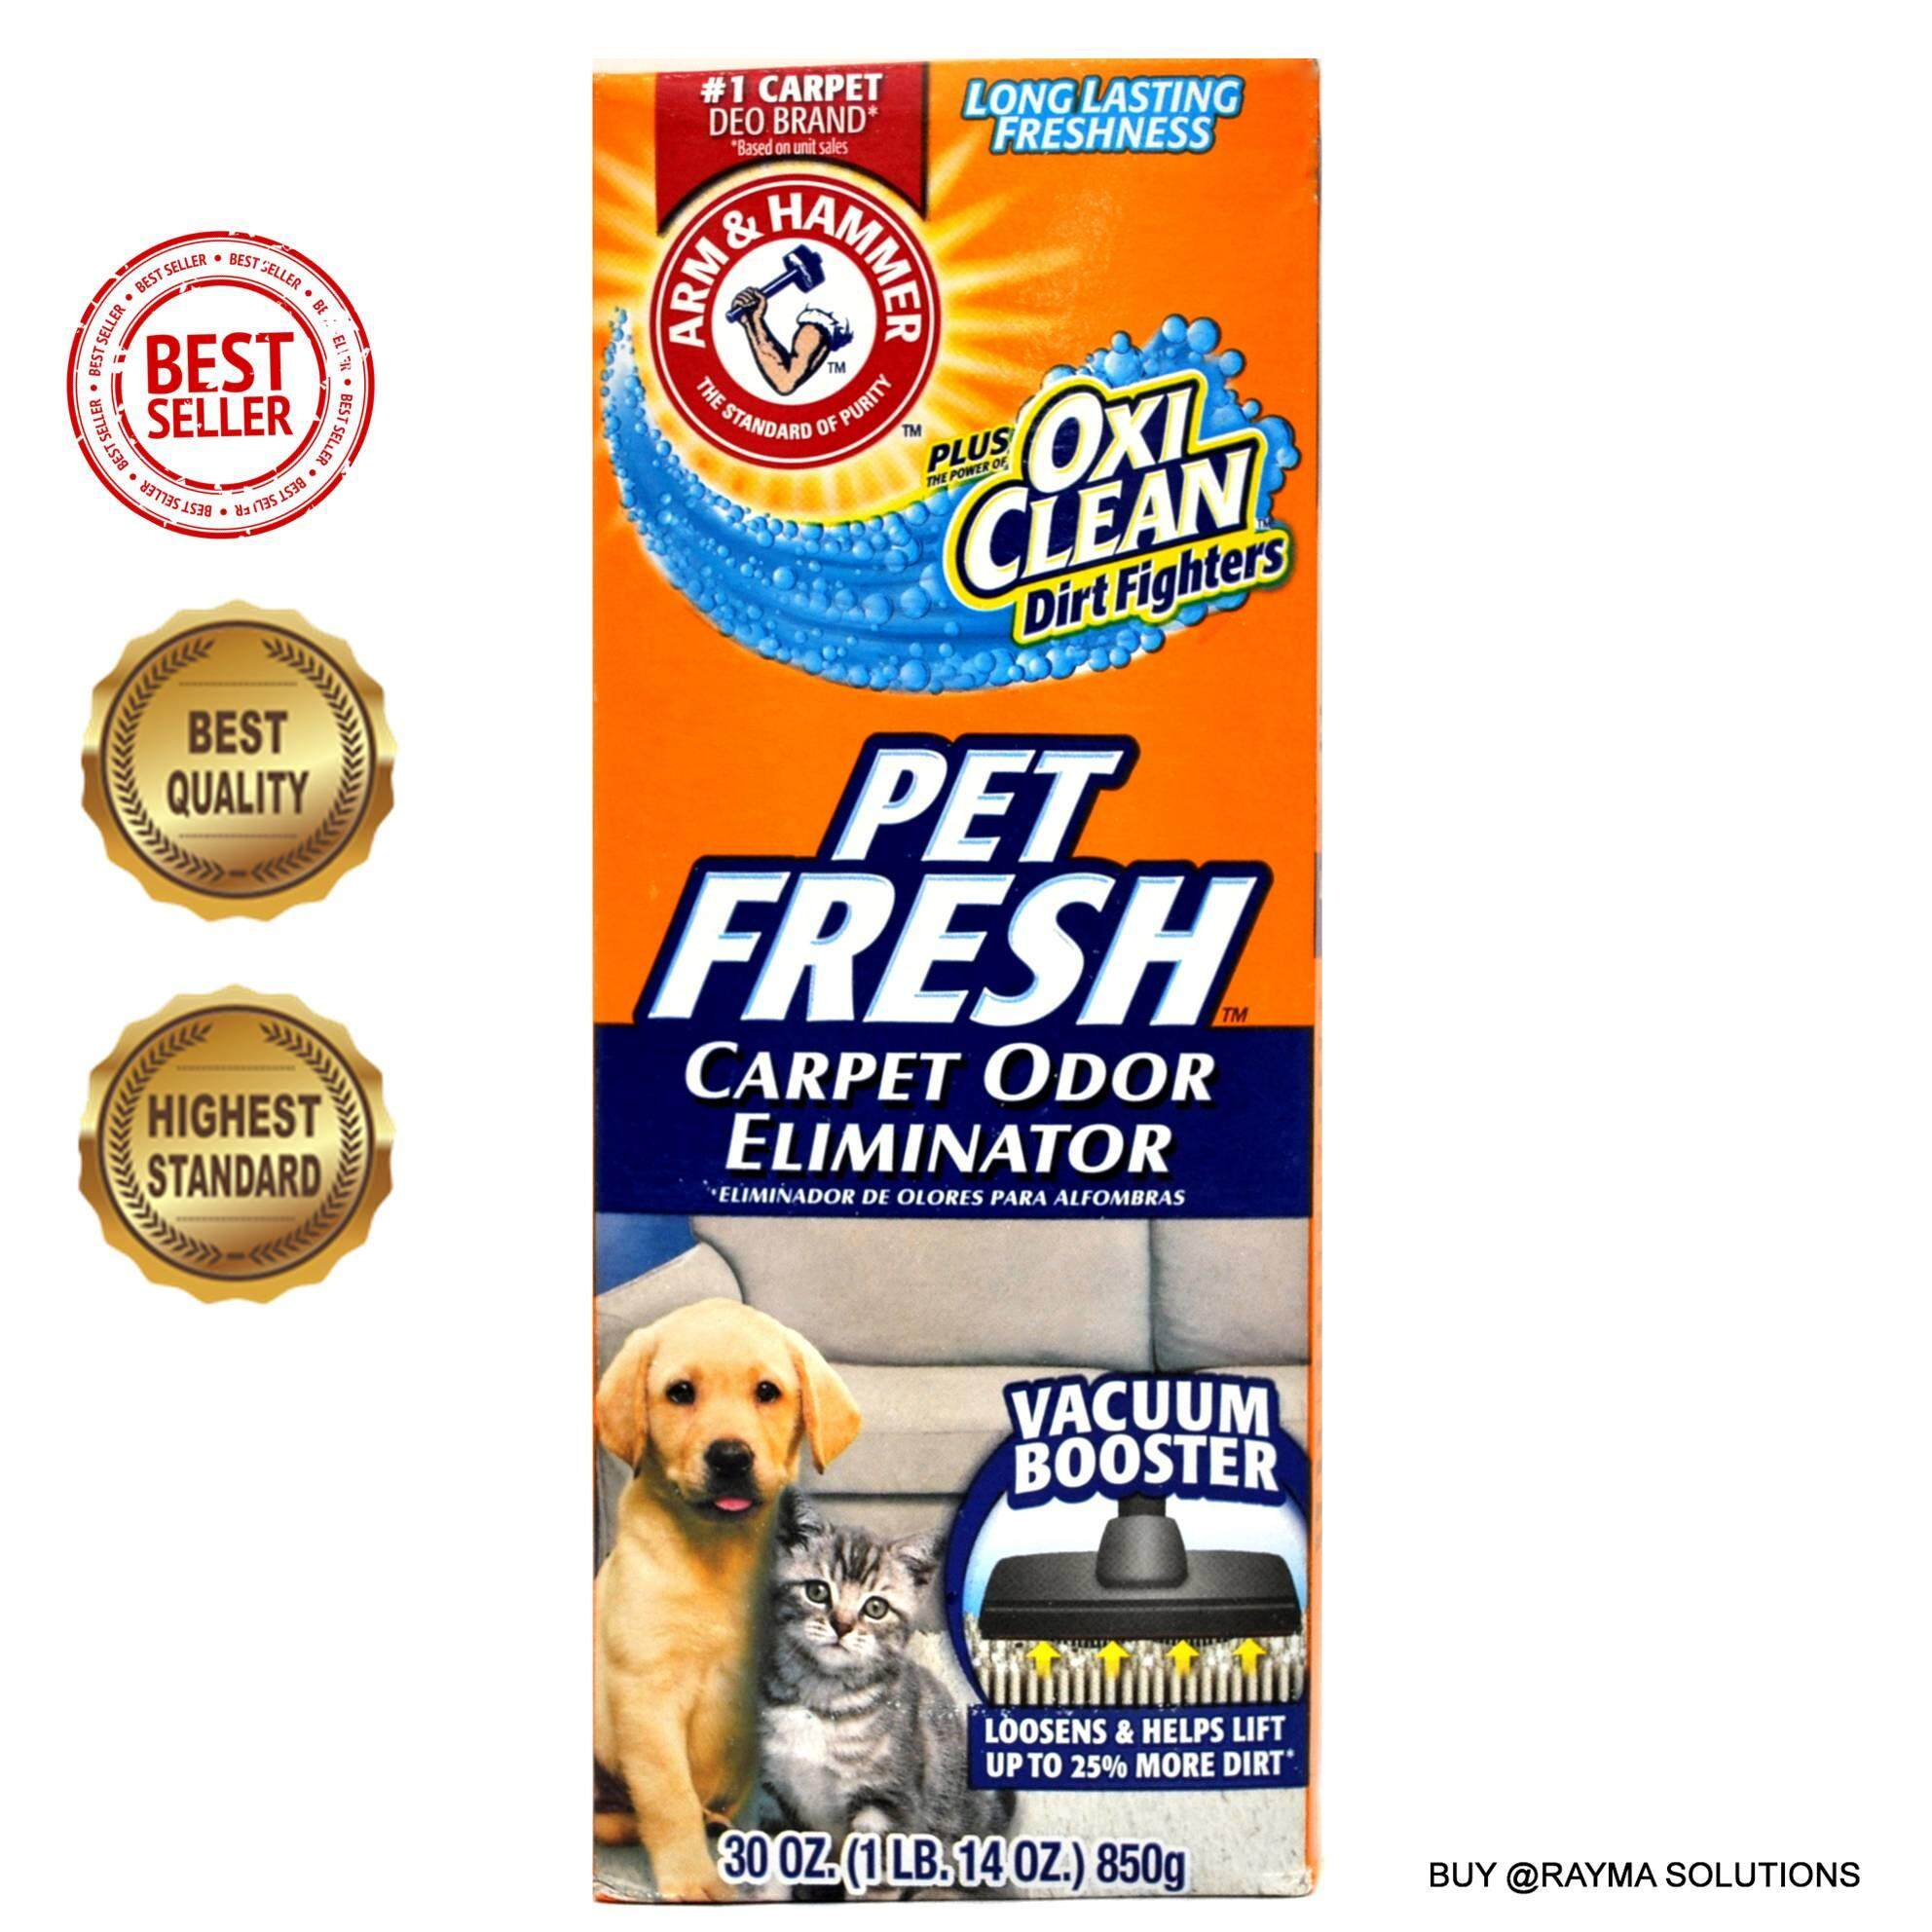 ARM & HAMMER Pet Fresh Carpet Odor Eliminator, Plus OxiClean Dirt Fighters, 850g